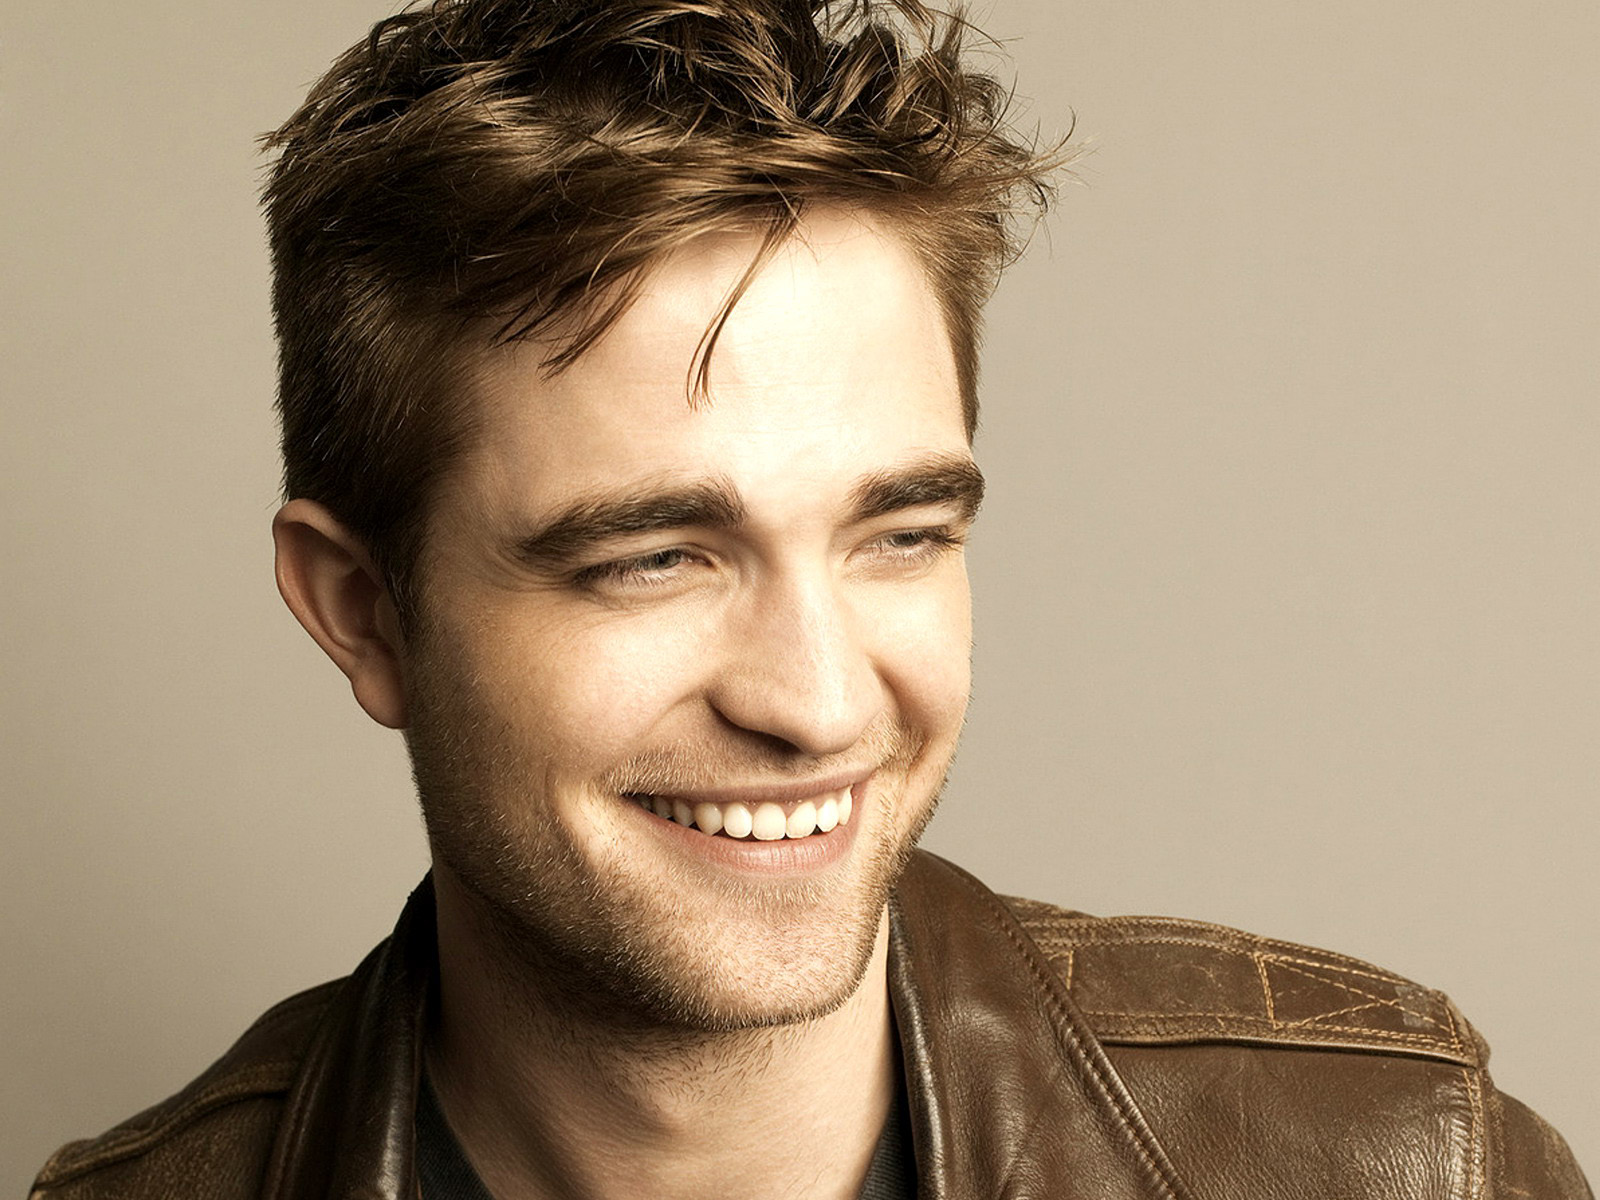 Robert Pattinson smile wallpaper